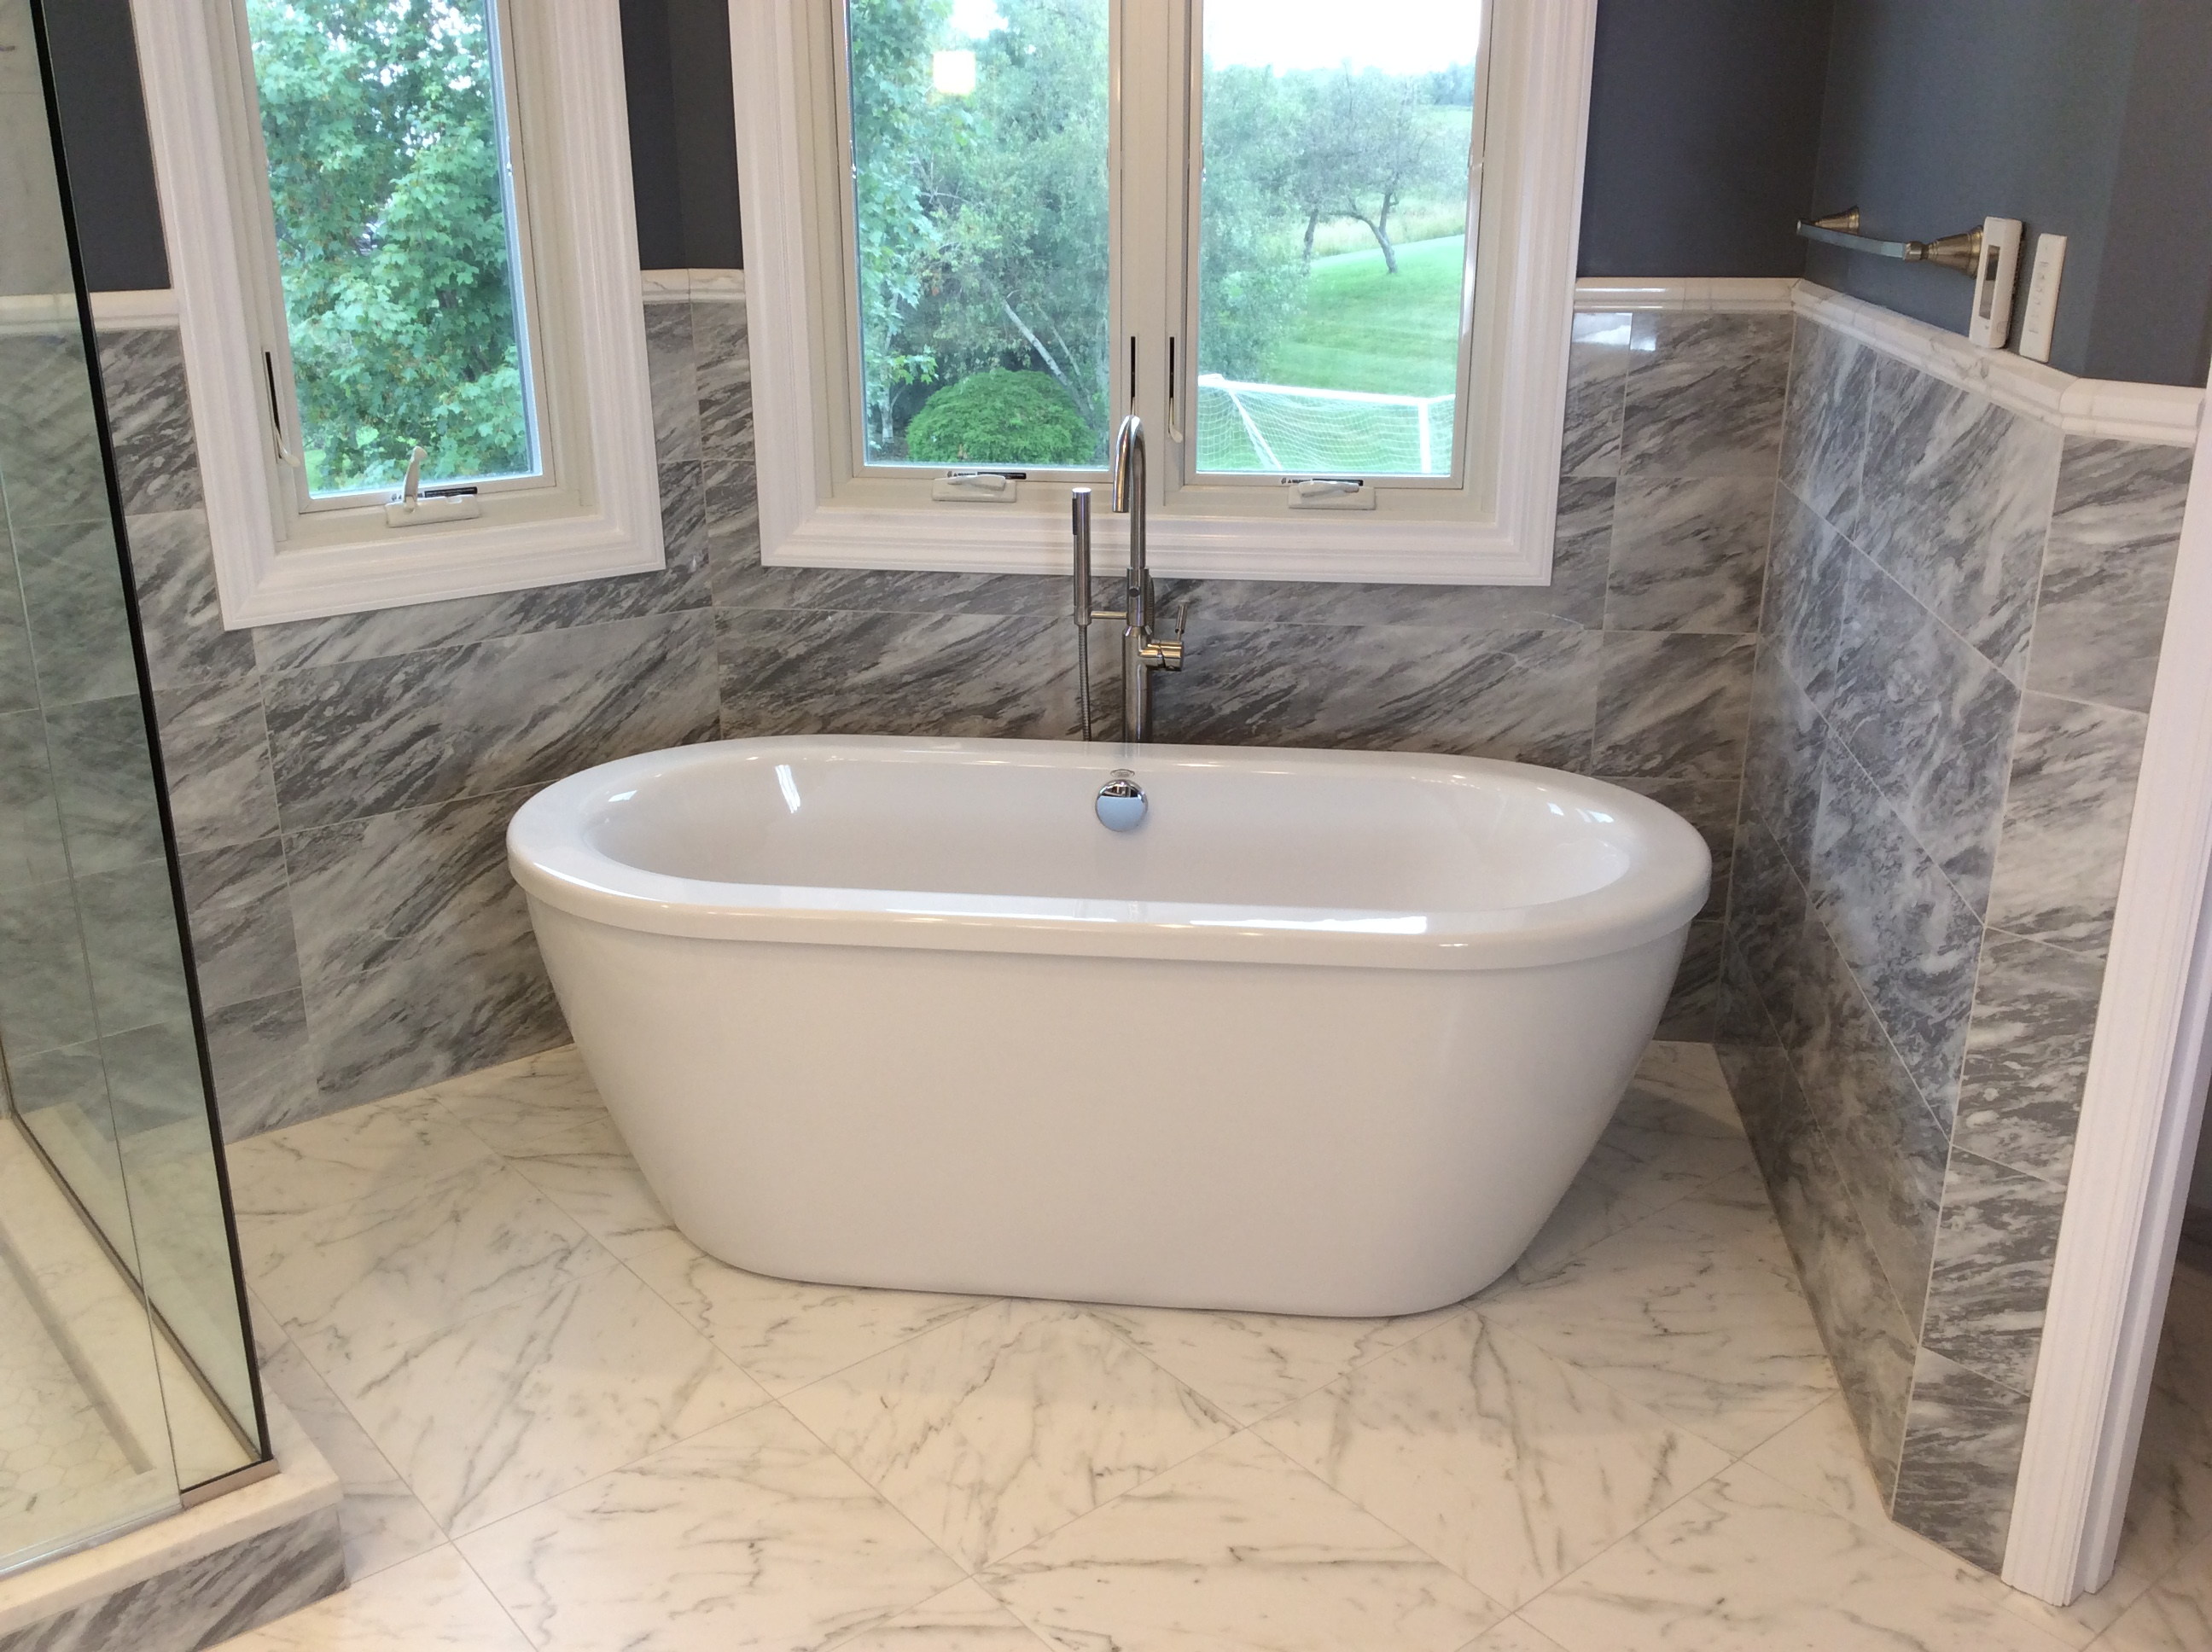 Nelson Kitchen And Bath Mars PA Serving Pittsburgh - Bathroom remodeling cranberry twp pa